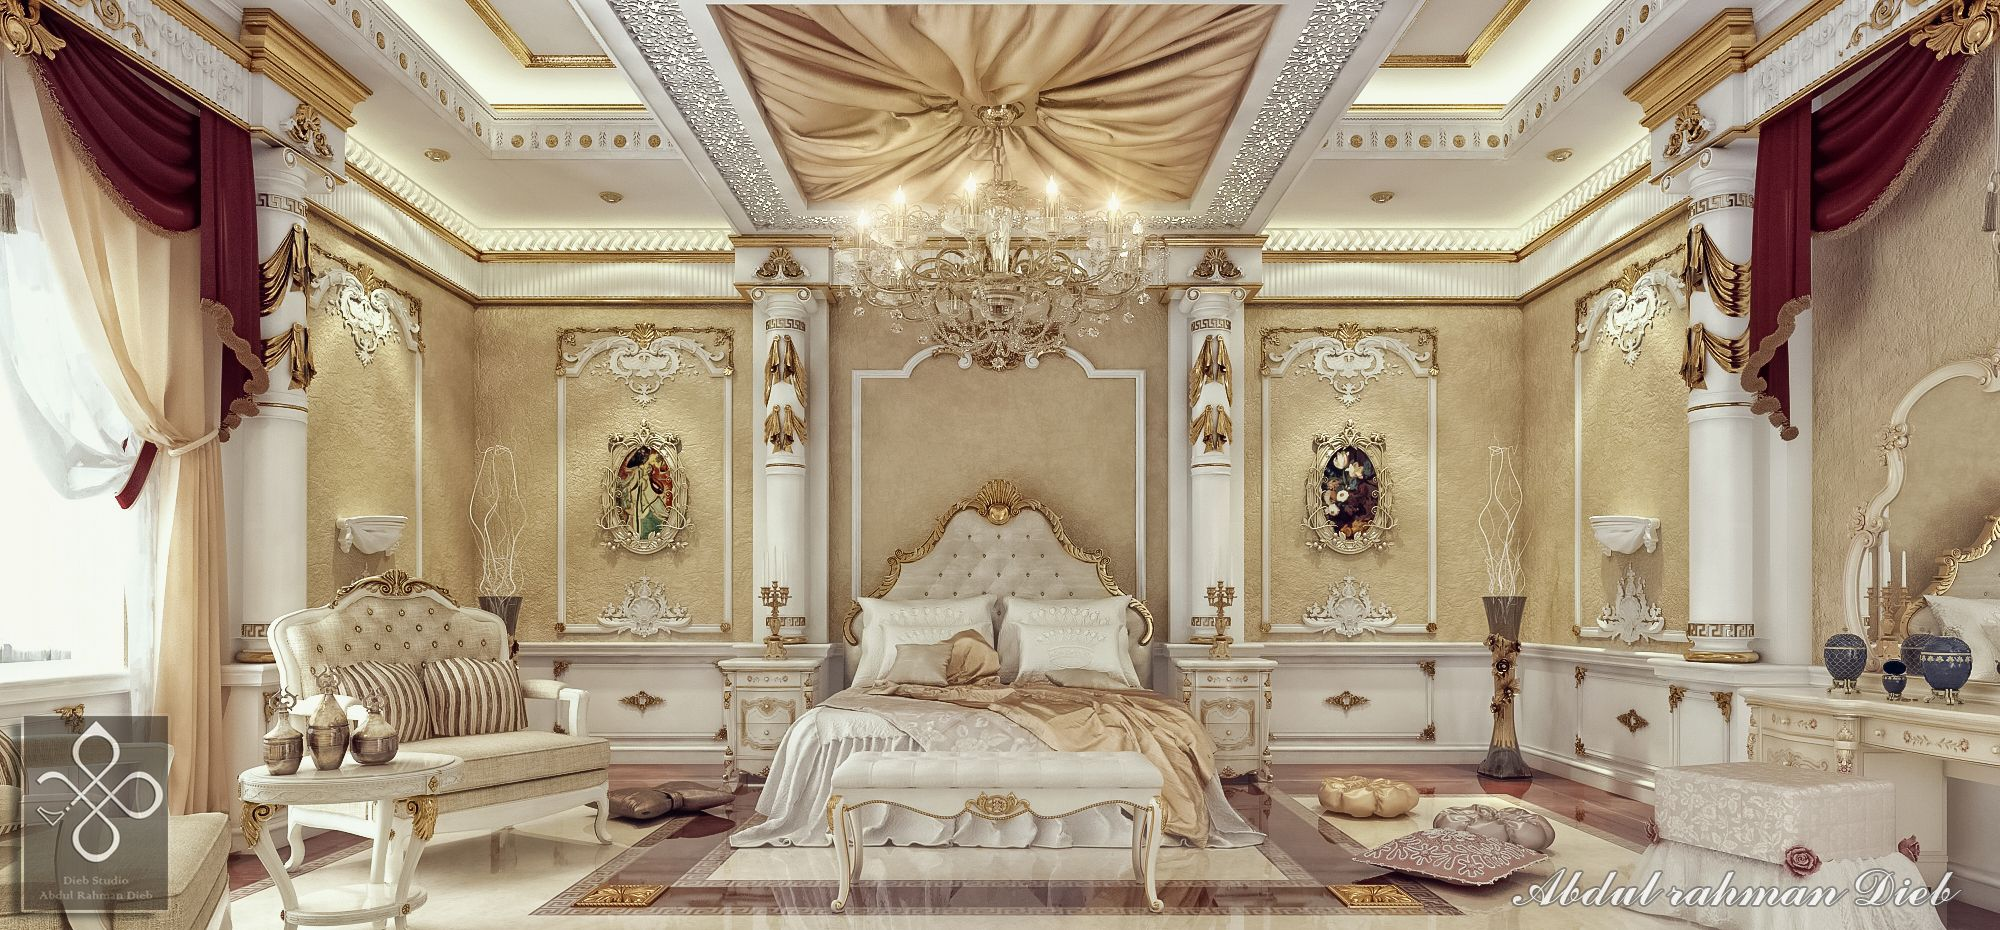 Royal Bedroom 3d Interiors Pinterest Royal Bedroom